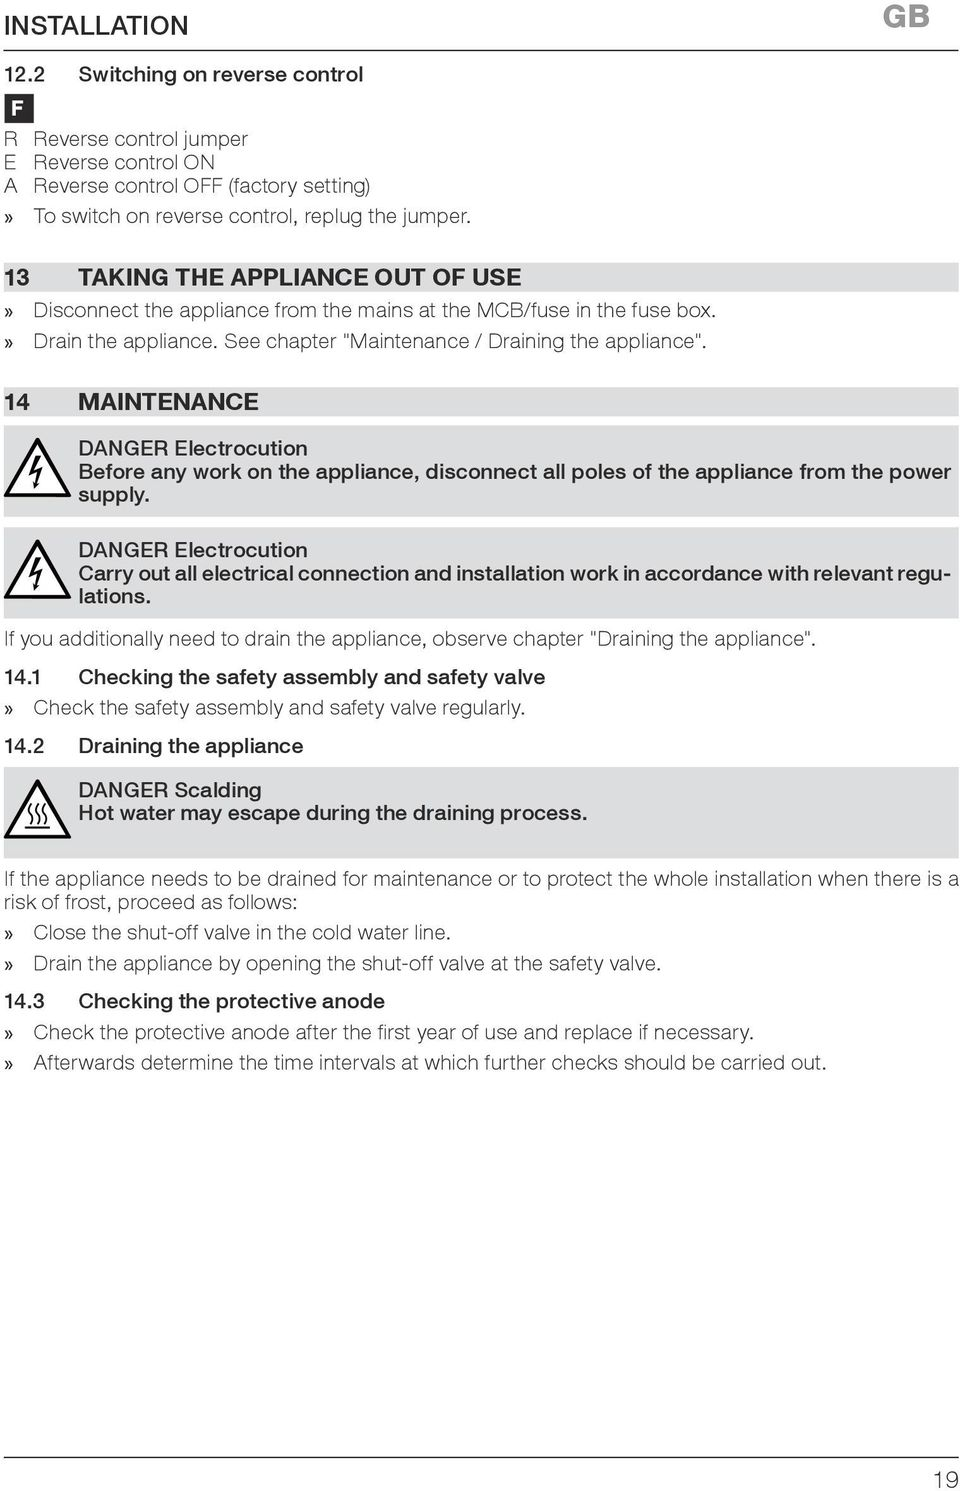 hight resolution of 14 maintenance danger electrocution before any work on the appliance disconnect all poles of the